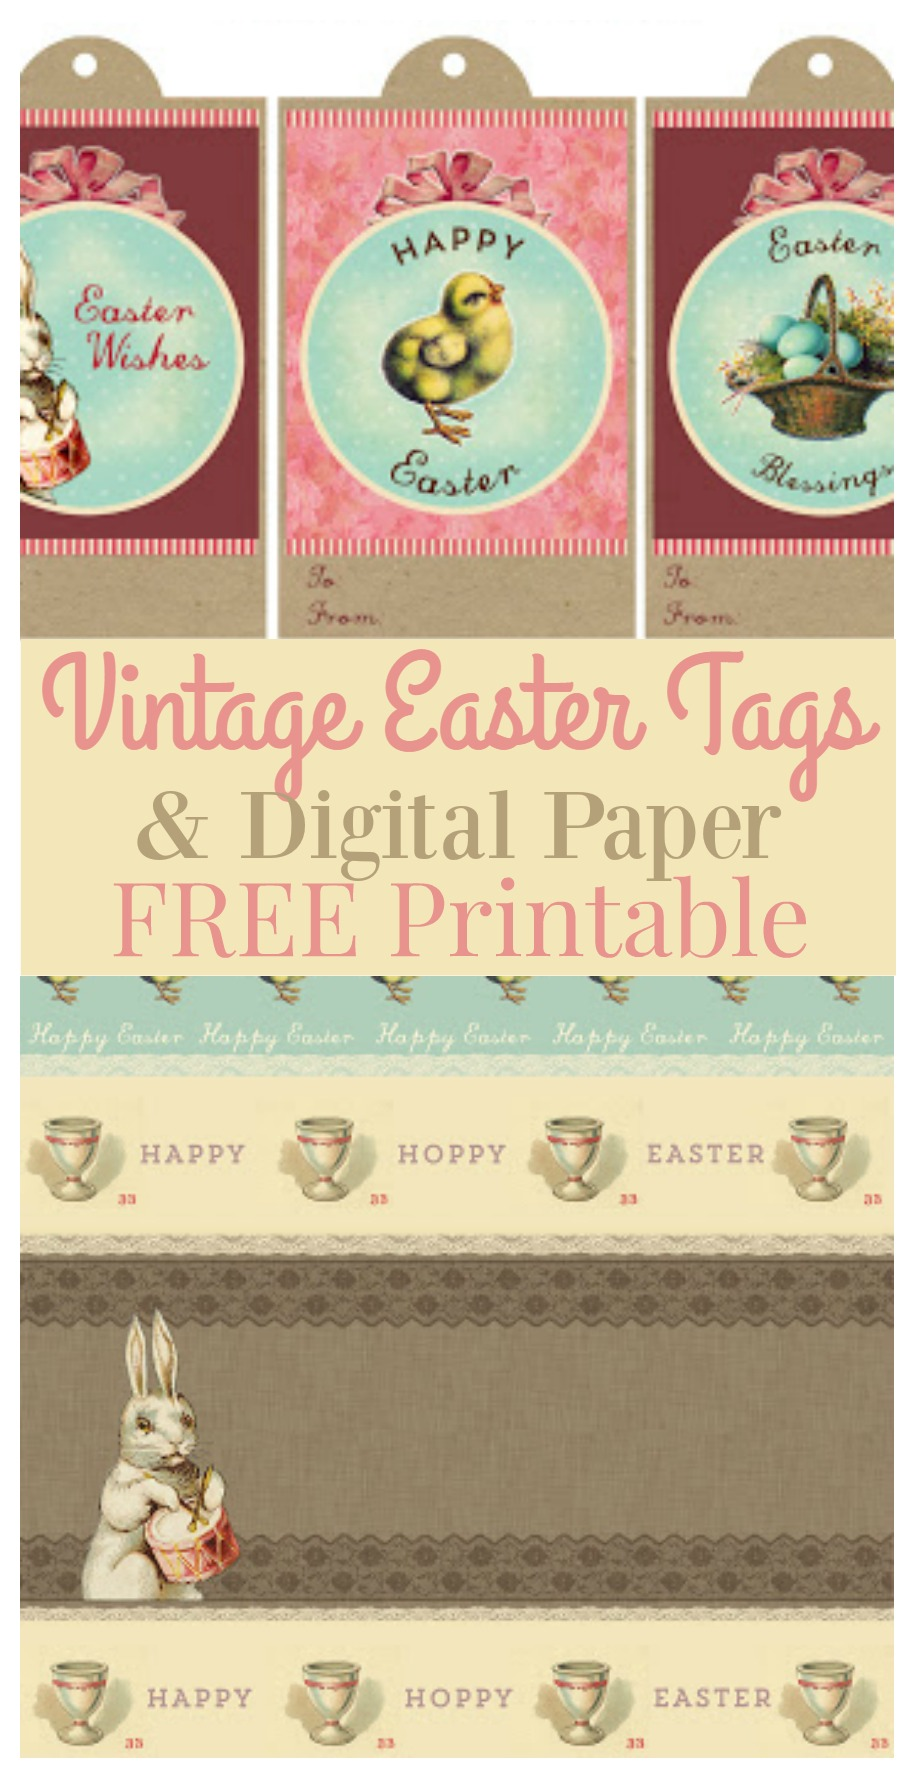 Vintage Easter Tags & Digital Paper FREE Printable